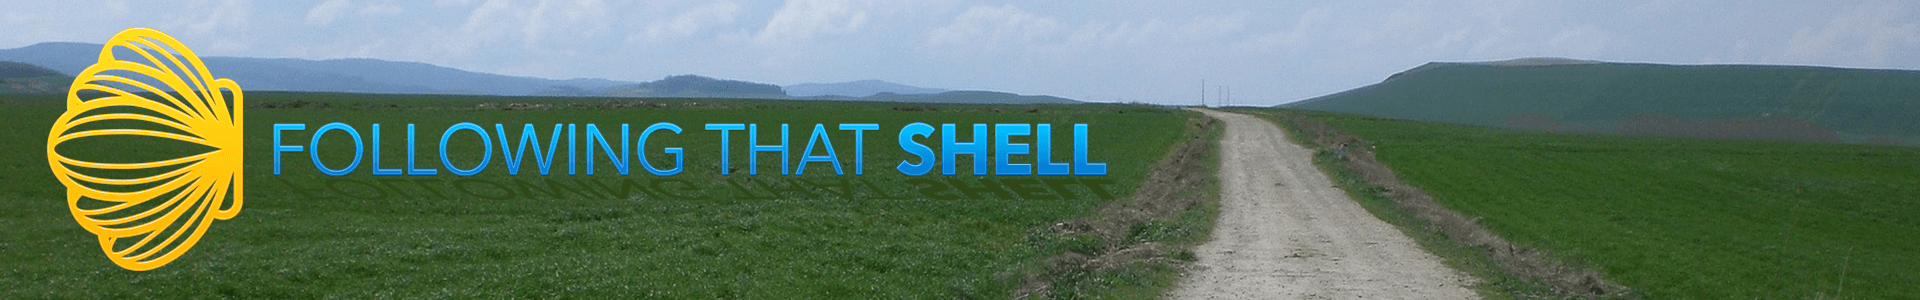 header-following-that-shell.png